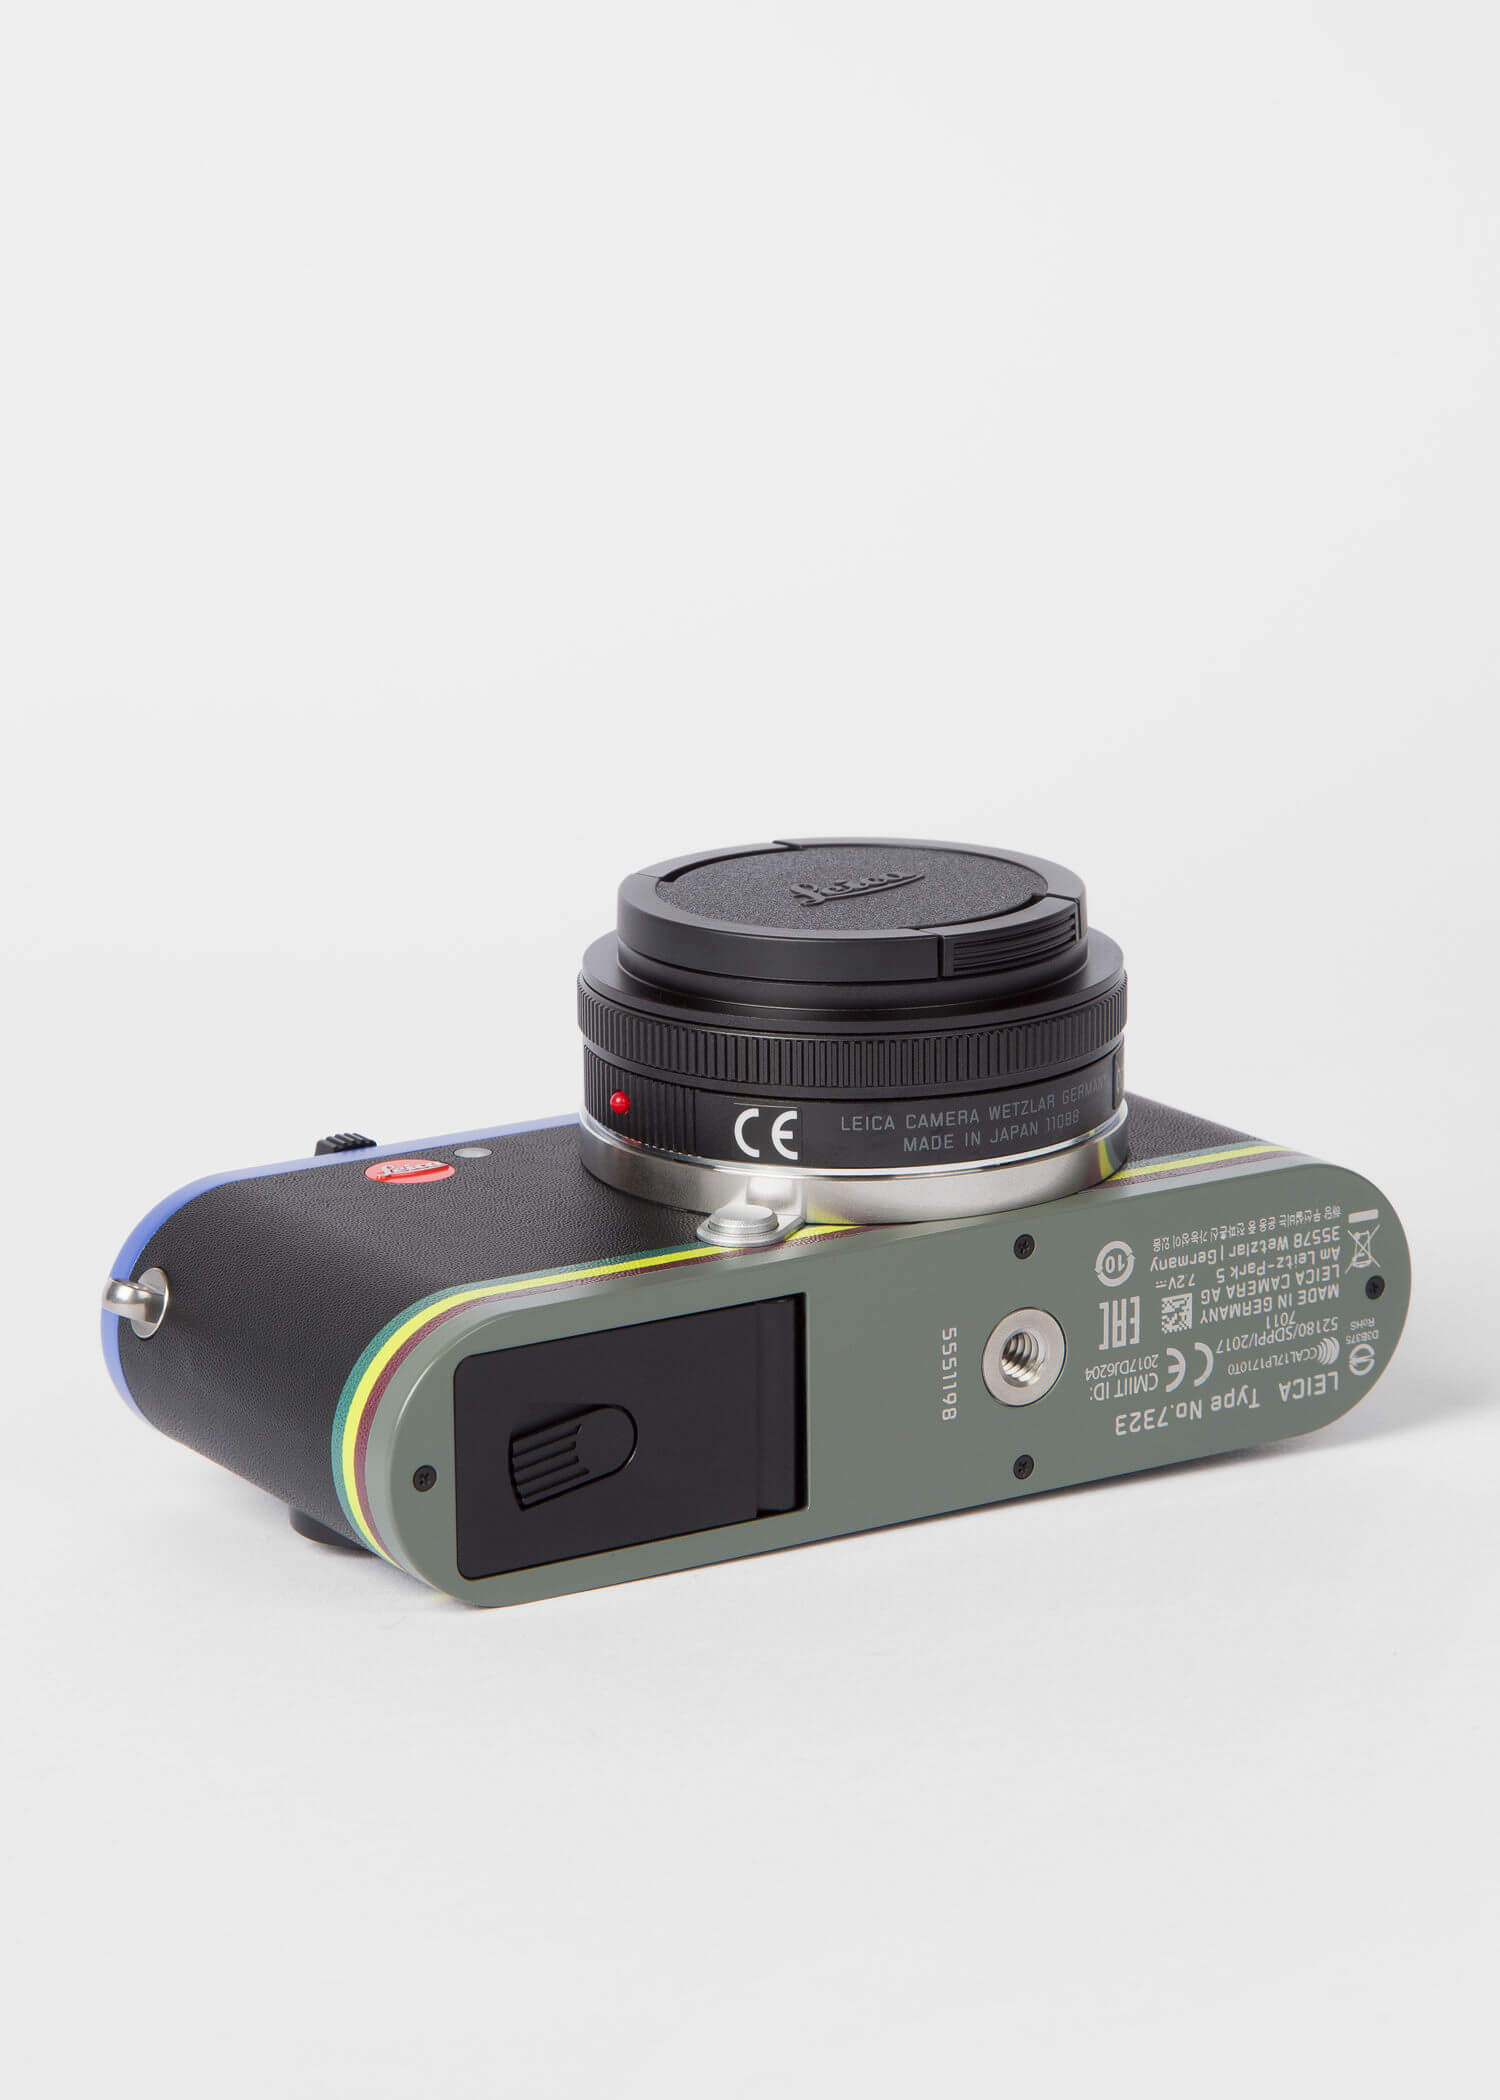 Leica CL Edition Paul Smith Mirrorless Digital Camera with 18mm Lens 10